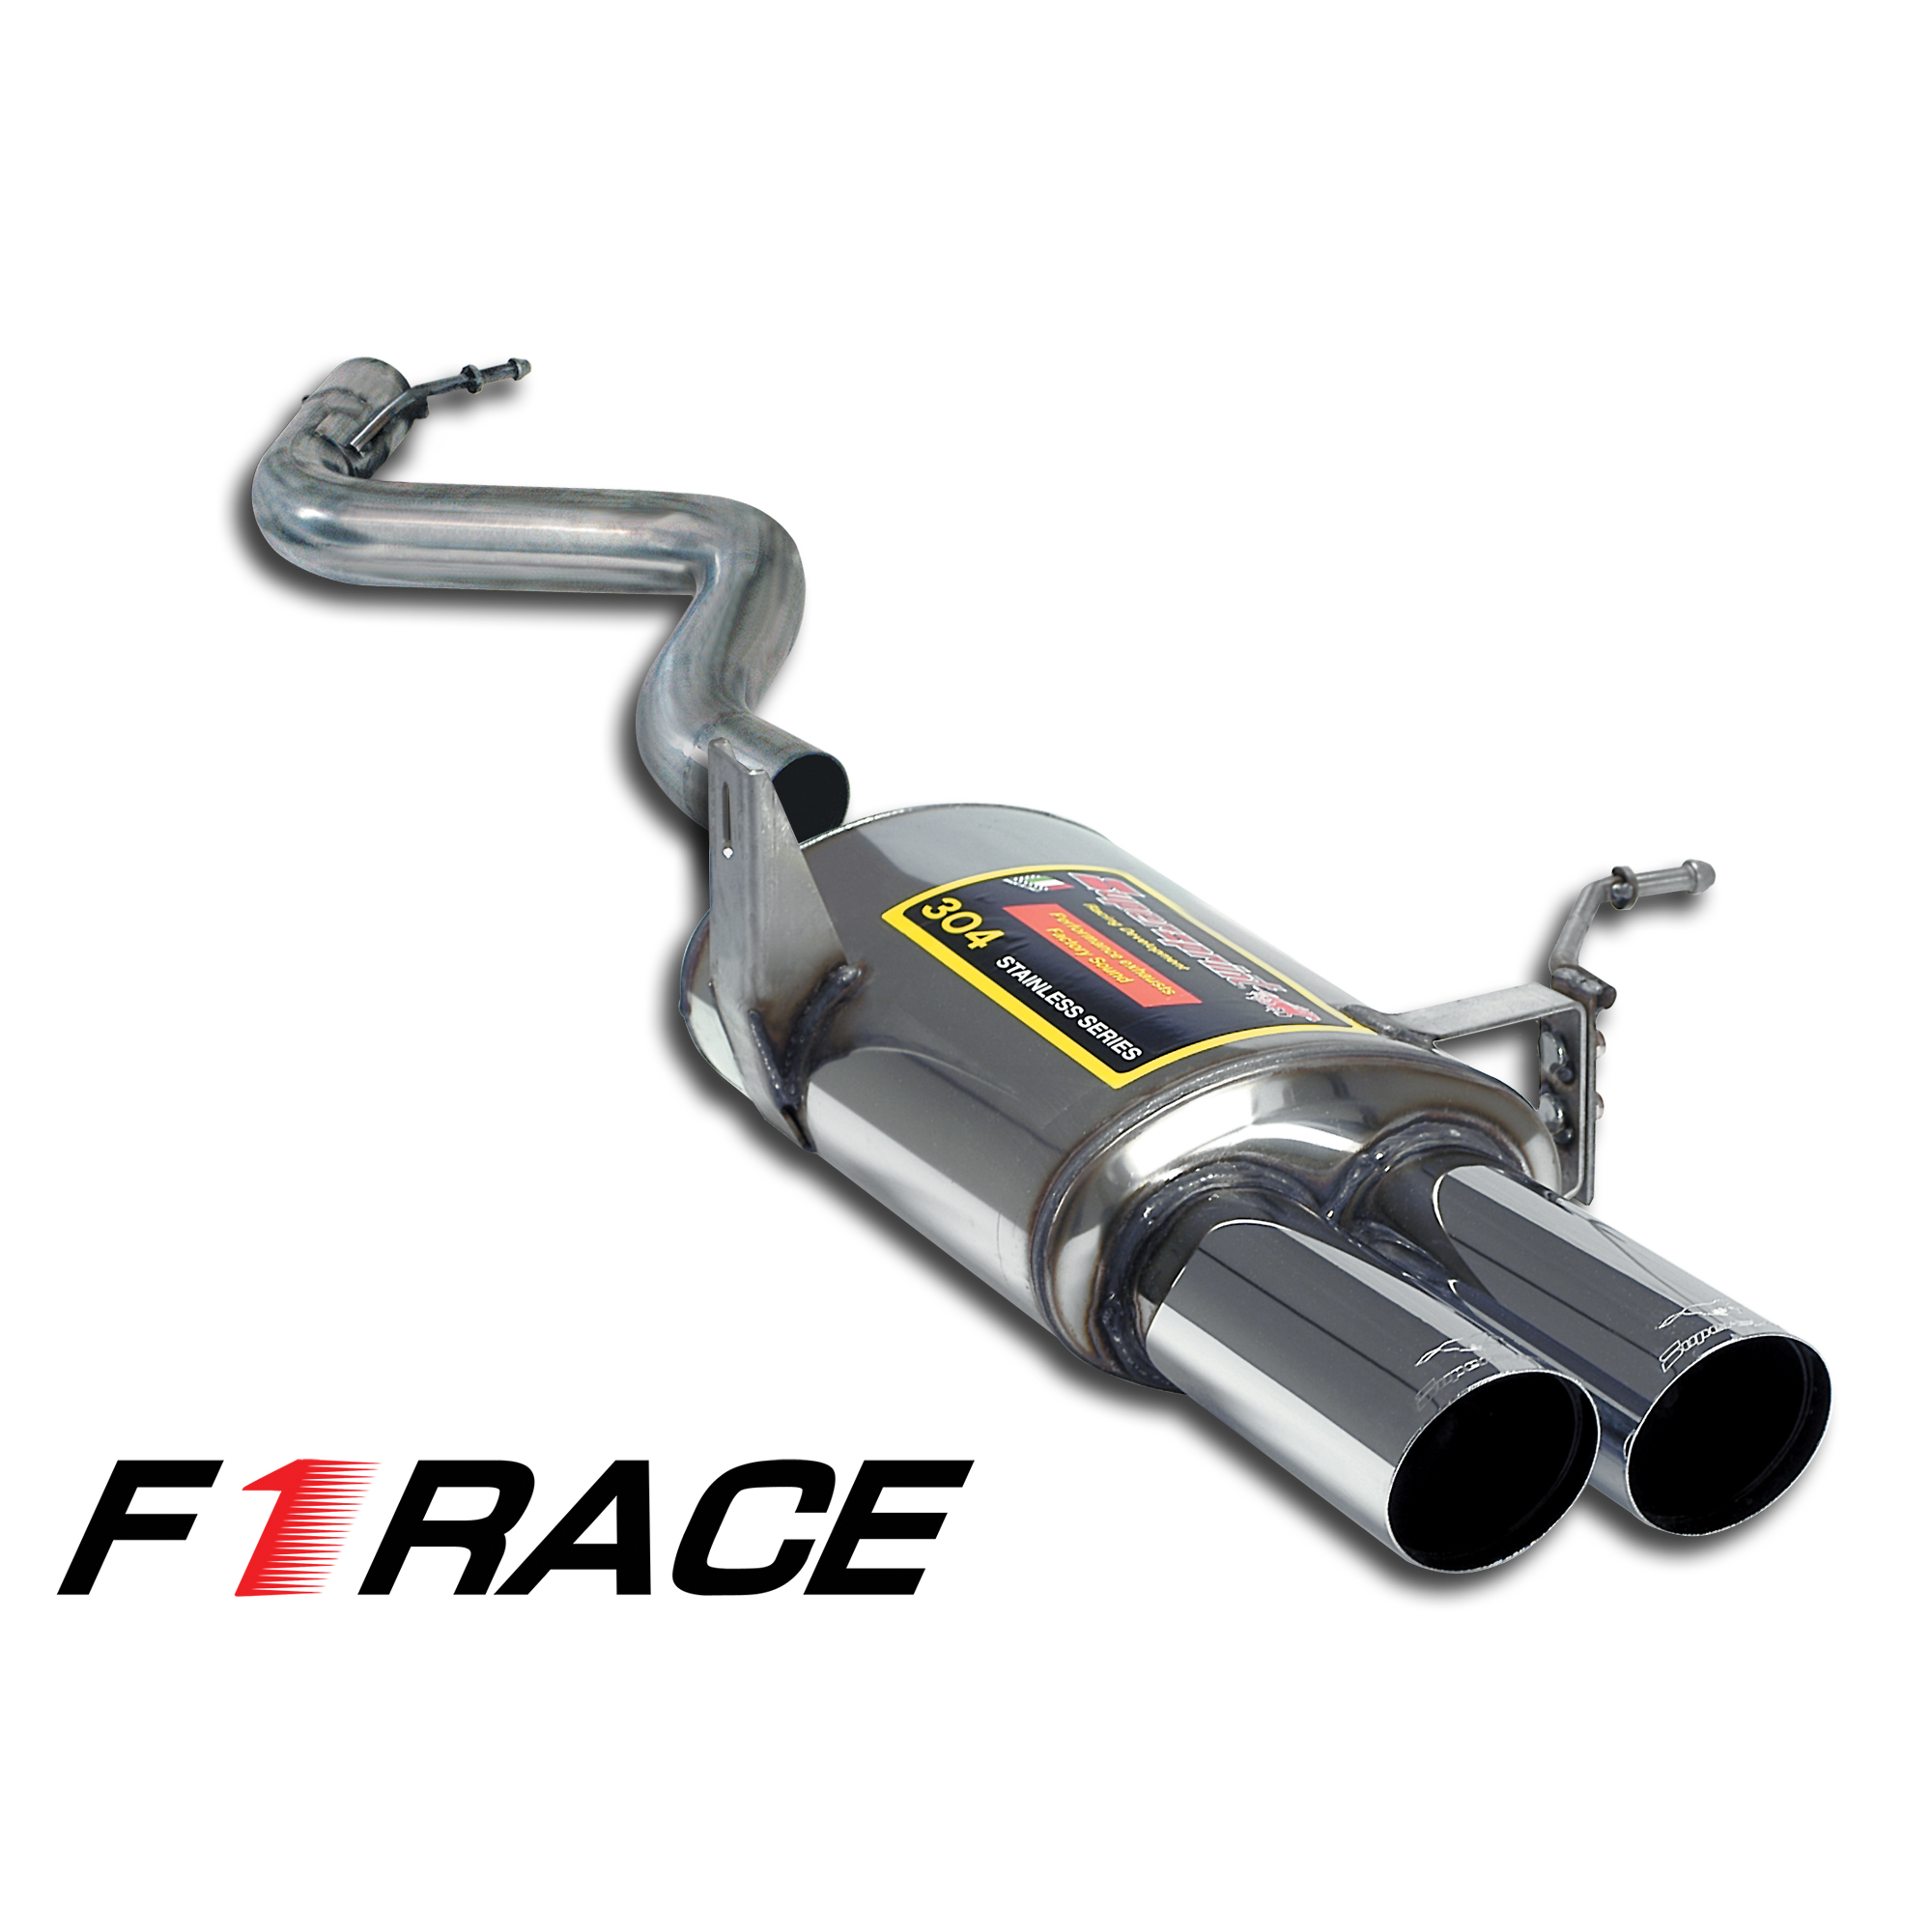 "BMW M - BMW E92 Coupè M3 4.0 V8 '07 -> '13 Rear exhaust Left ""F1 Race LIGHTWEIGHT"" OO80, performance exhaust systems"